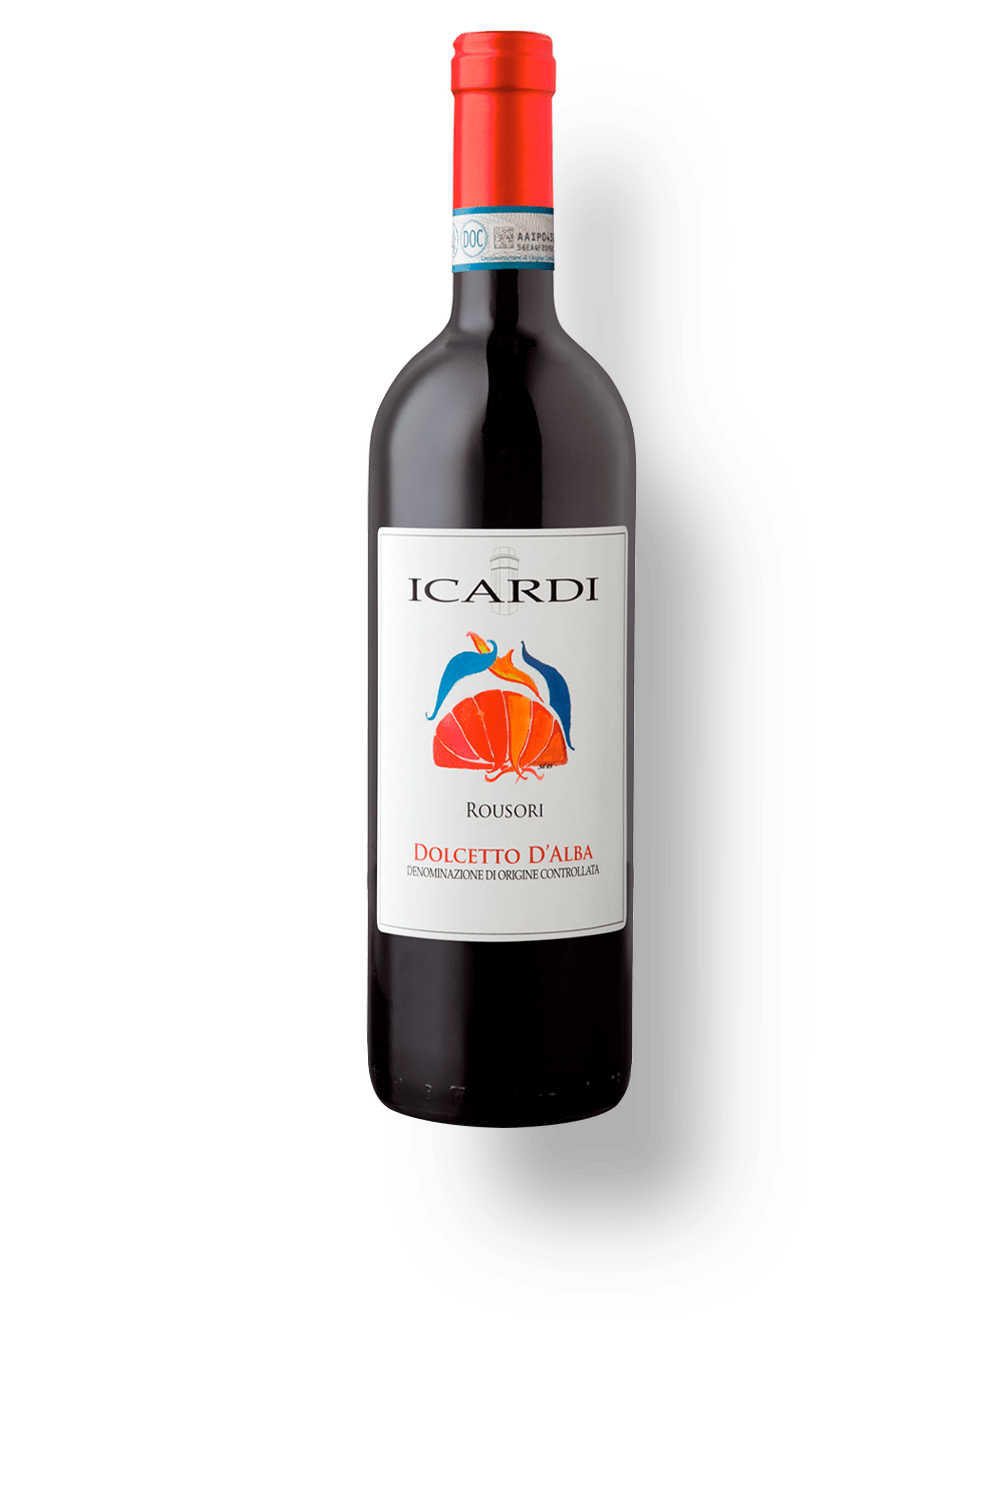 Icardi Dolcetto d'Alba ''Rousori'' DOC - worldwine